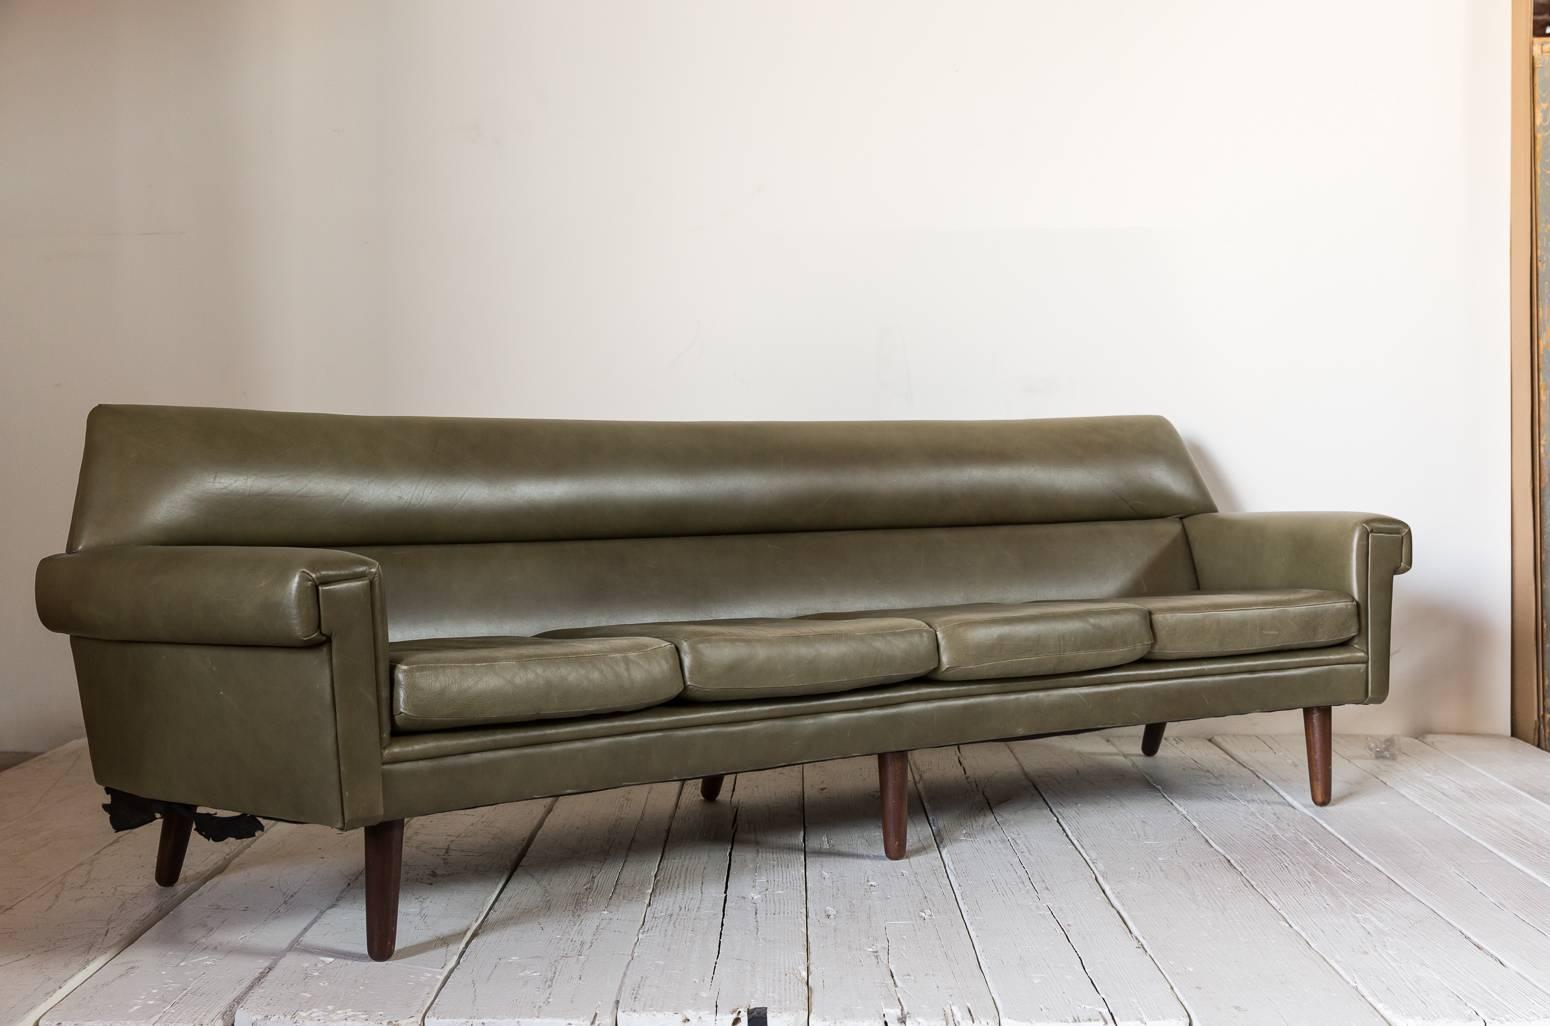 Midcentury Olive Green Leather Sofa With A Slightly Curved Back With A  Tapered Cylindrical Leg And